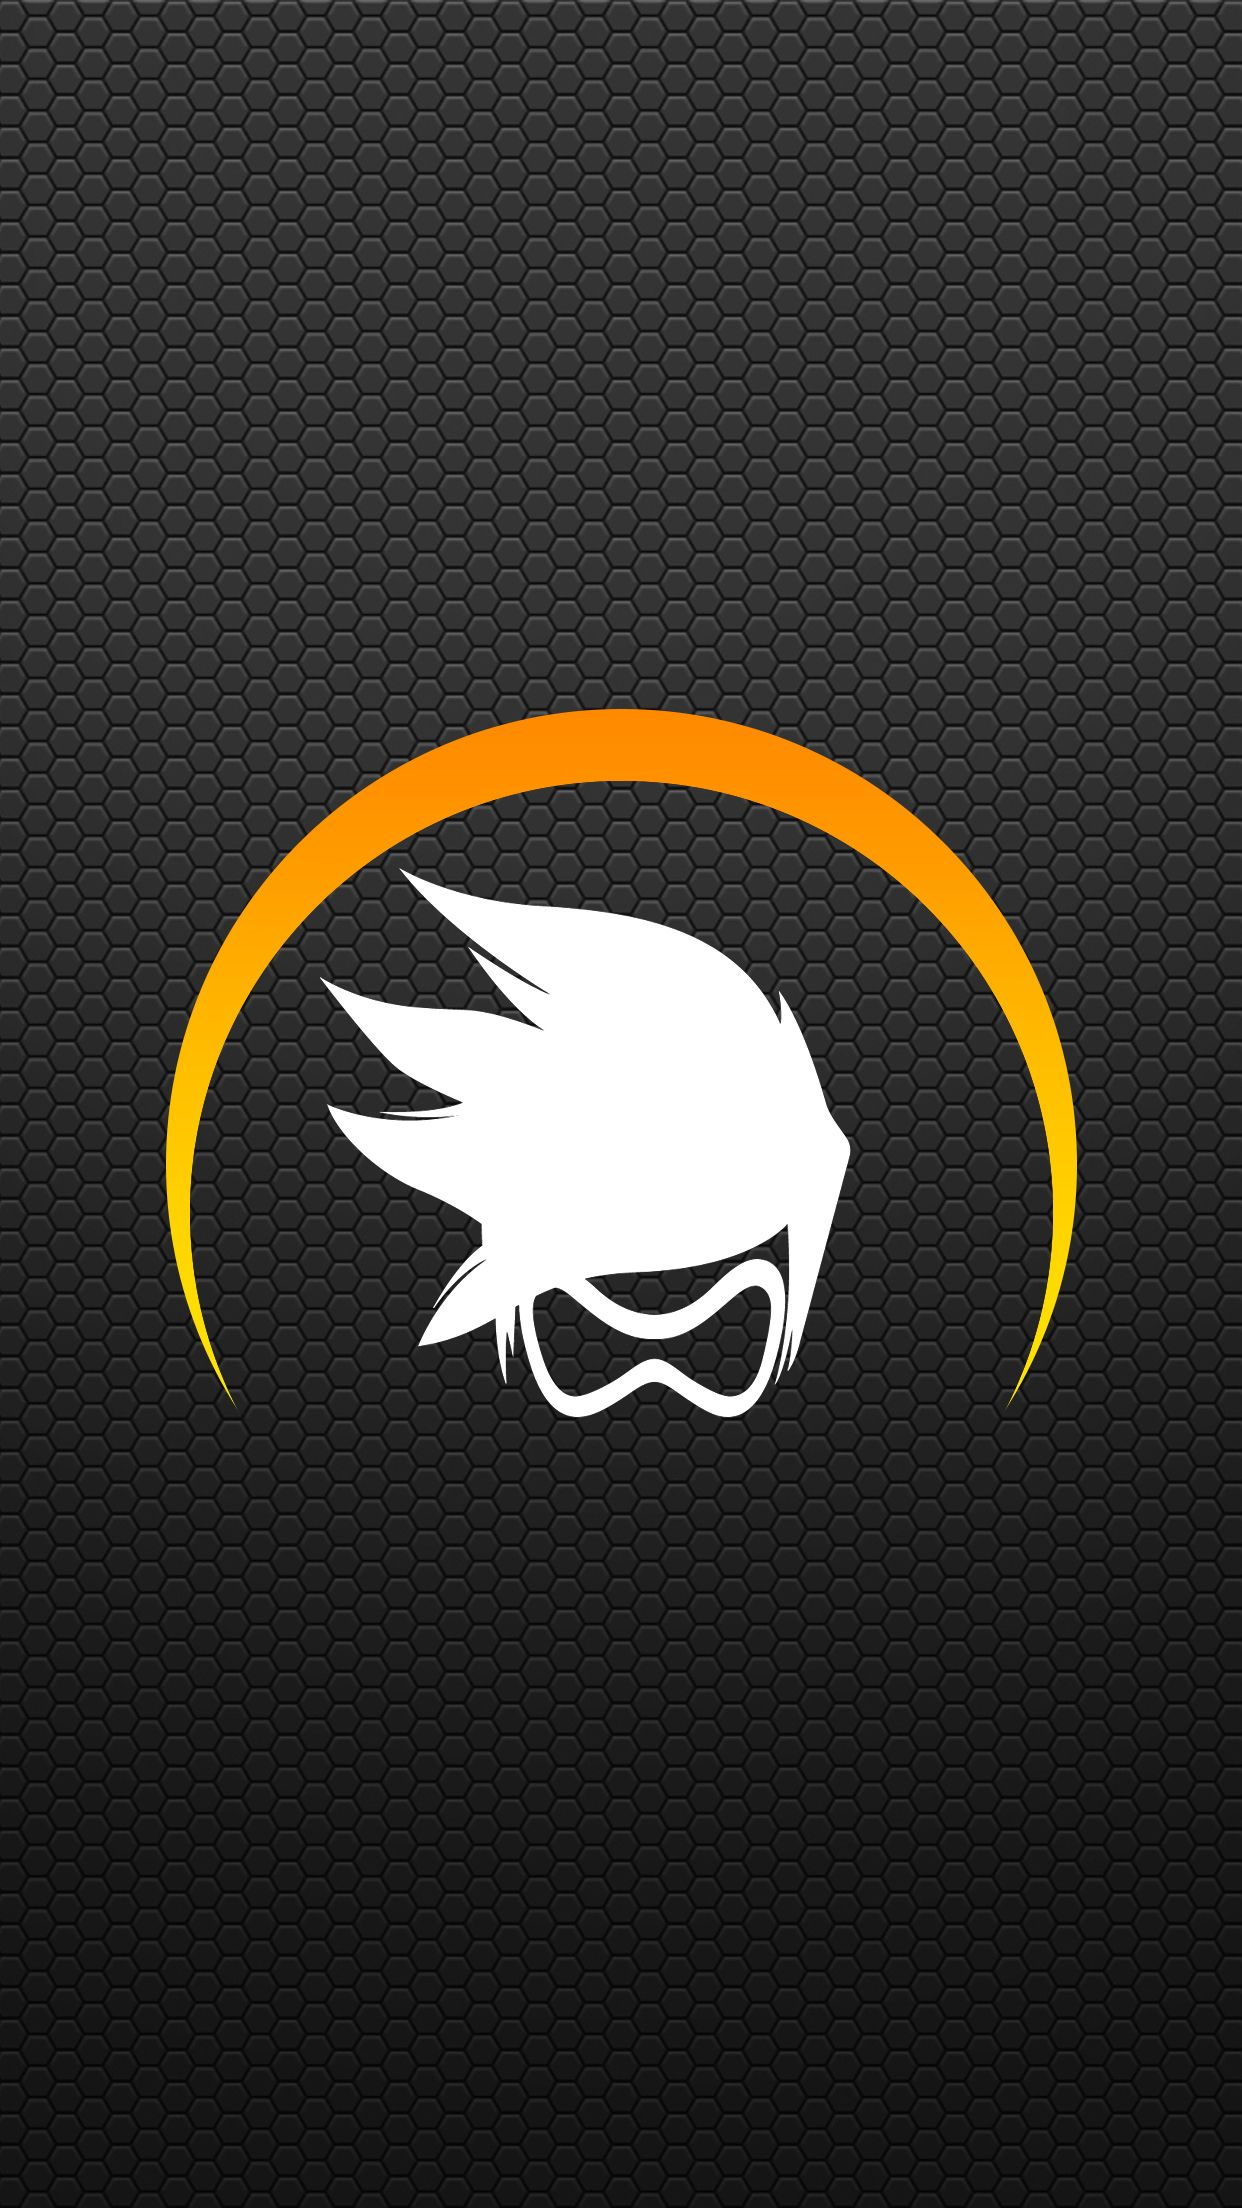 Pin By Neo Mnemonic On Overwatch Phonewallpaper Overwatch Tracer